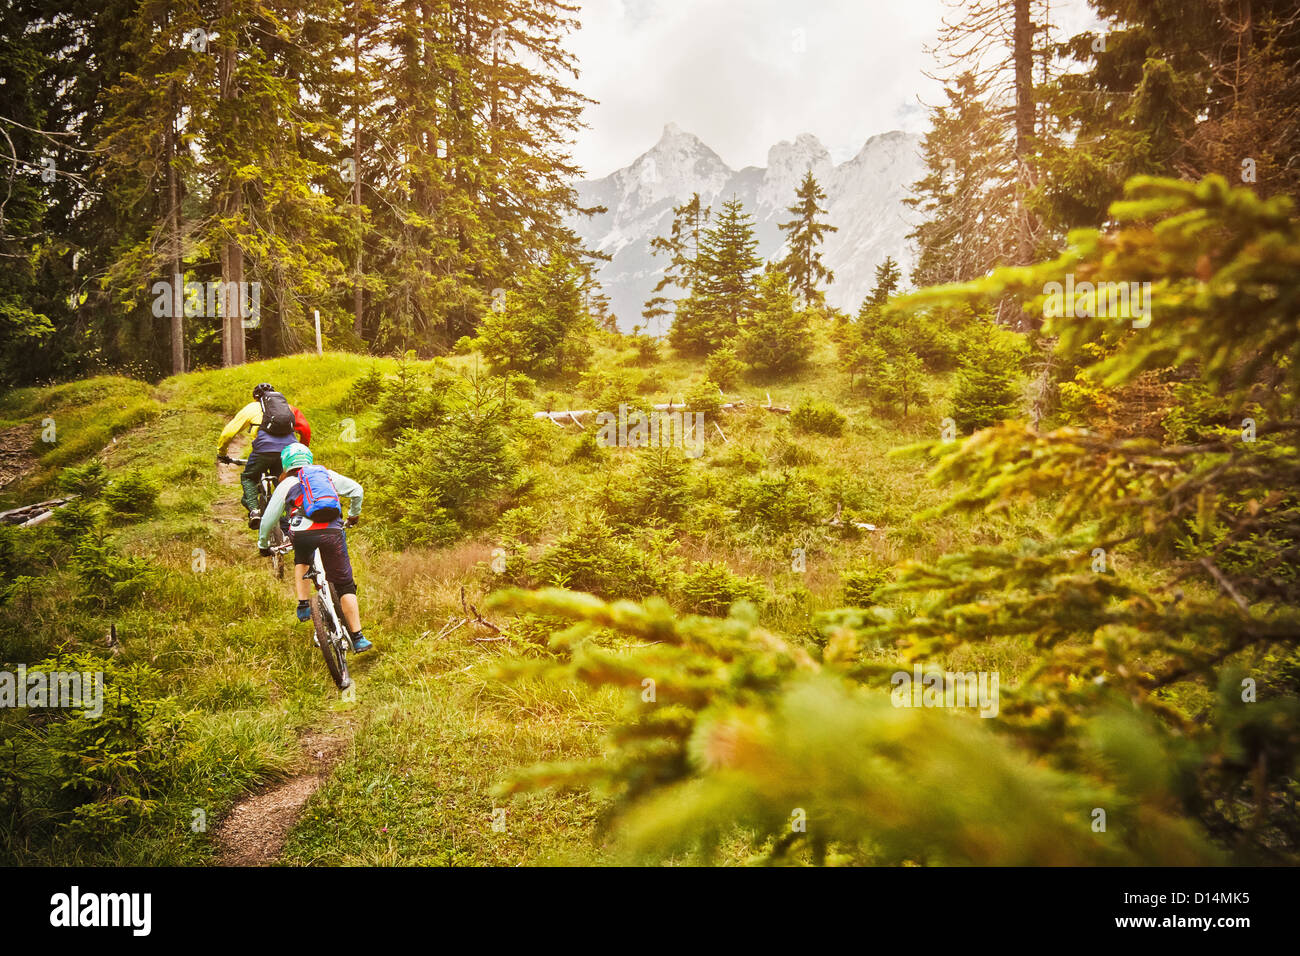 People riding bicycles on dirt path - Stock Image